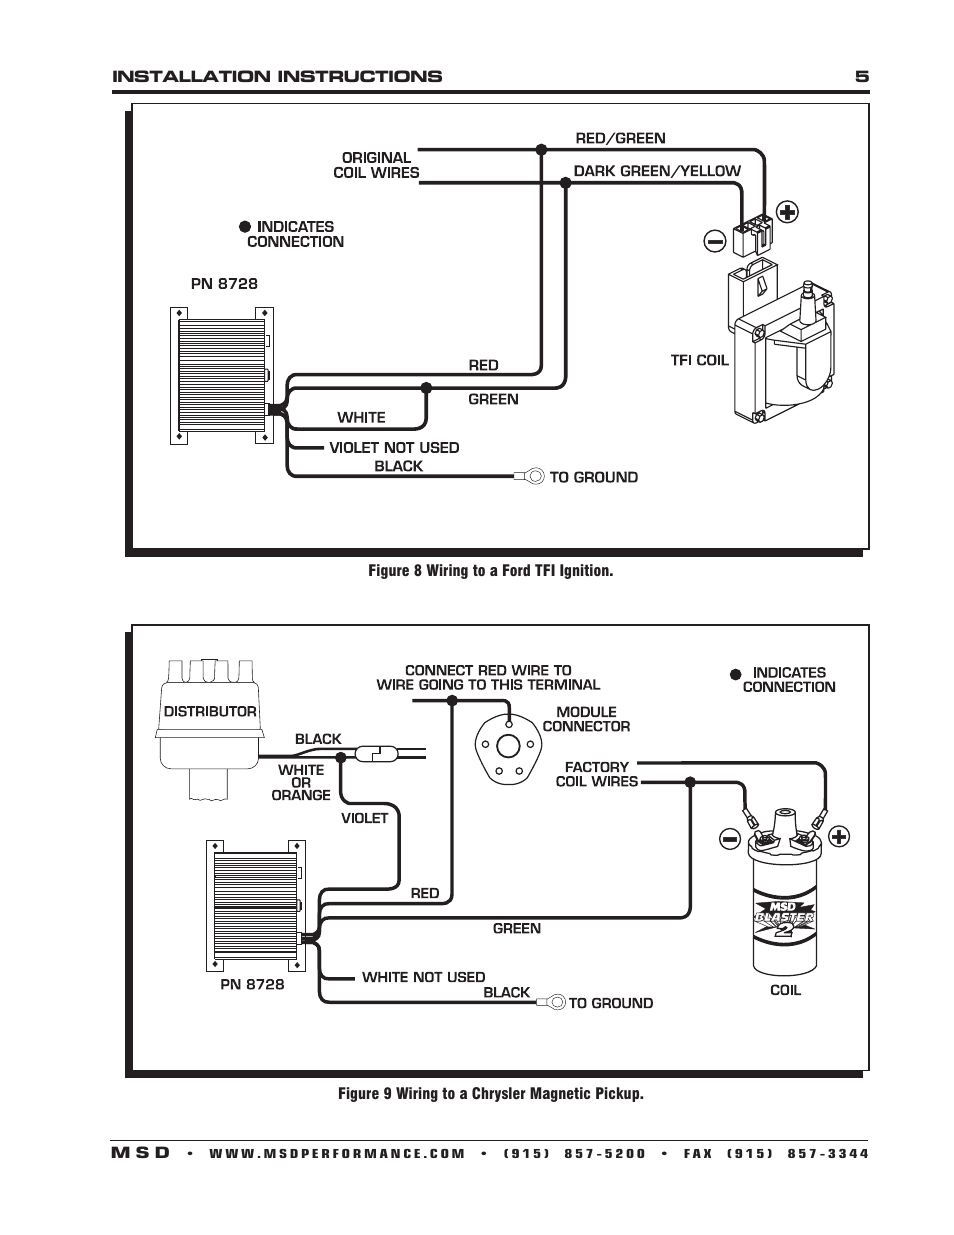 msd 6a 6200 wiring diagram msd ignition box wiring wiring Wiring Diagram of Digital Mallory Distributor Wiring Diagram